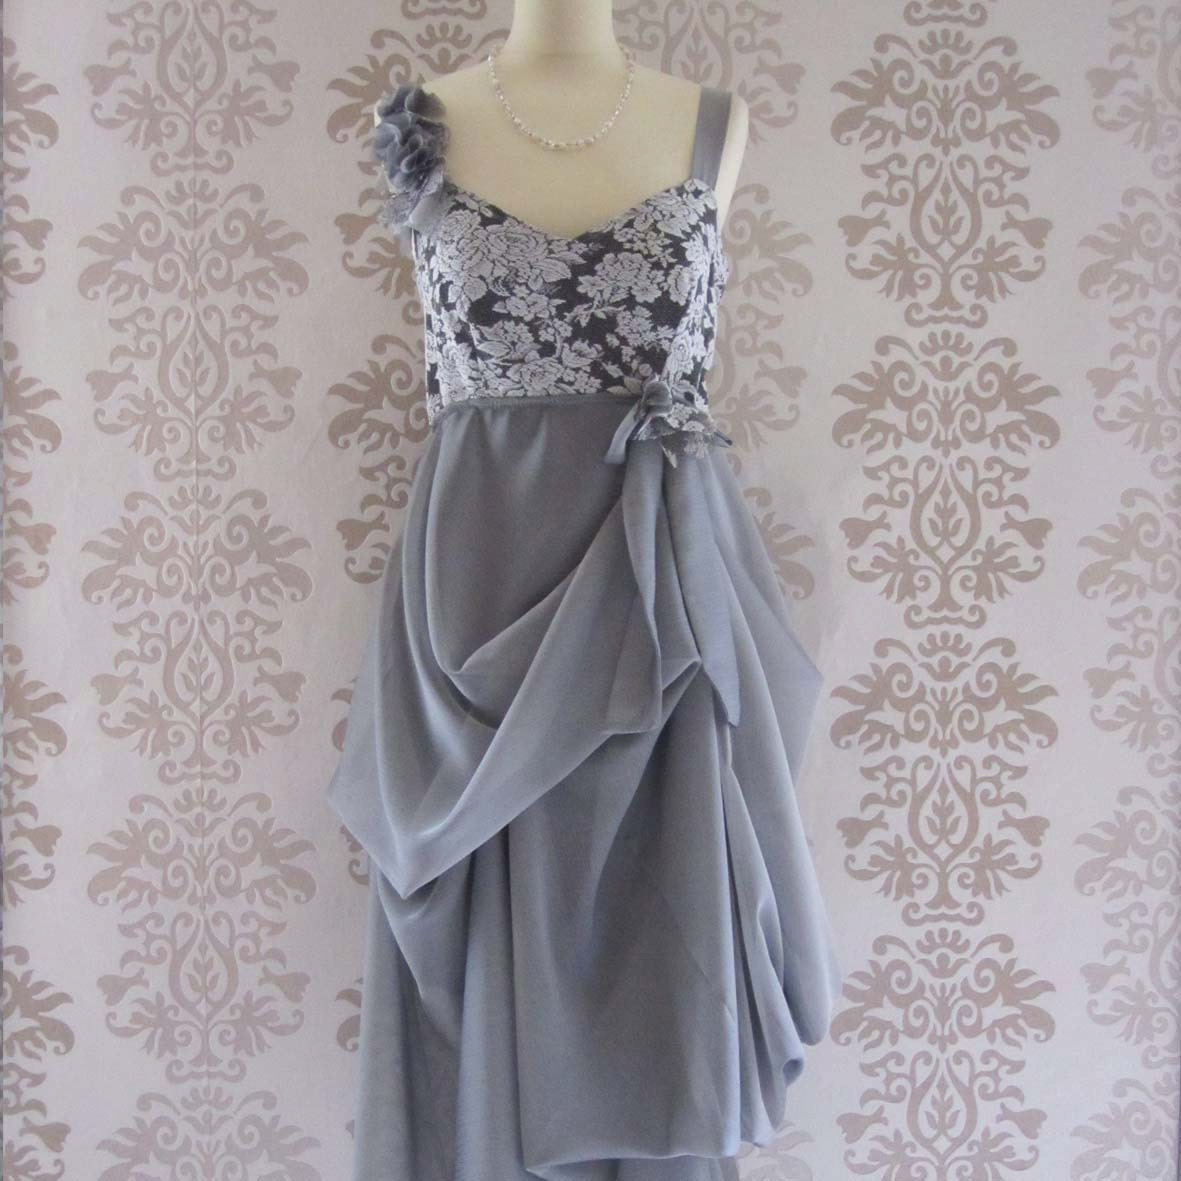 ELENORE Silver Grey Floral Lace Ruffles Bow Romantic